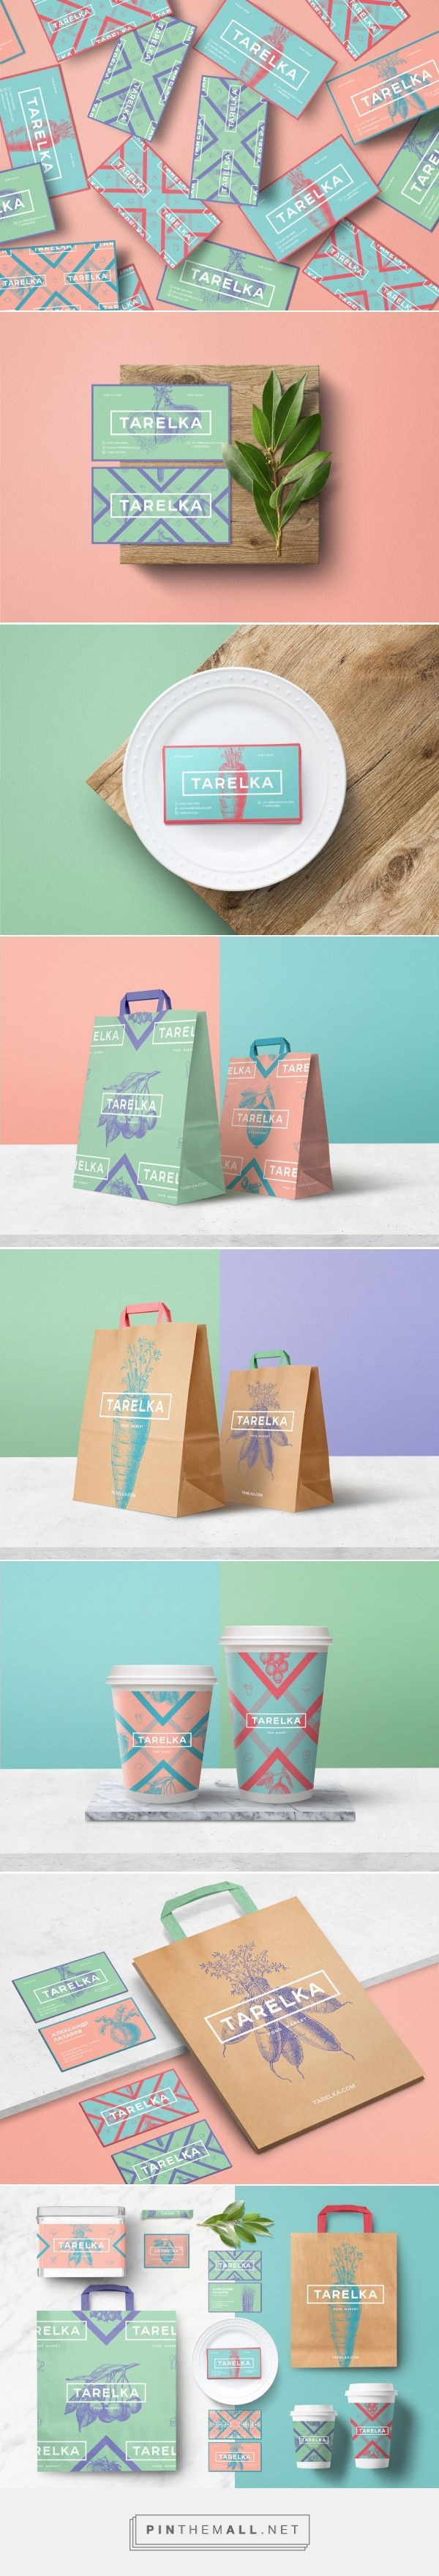 Branding, graphic design and packaging for ARELKA food market on Behance by Bureau Bumblebee Moscow, Russian Federation curated by Packaging Diva PD. Colors, graphics and engravings in our lovely TARELKA located in sunny Izberbash, Republic of Dagestan.